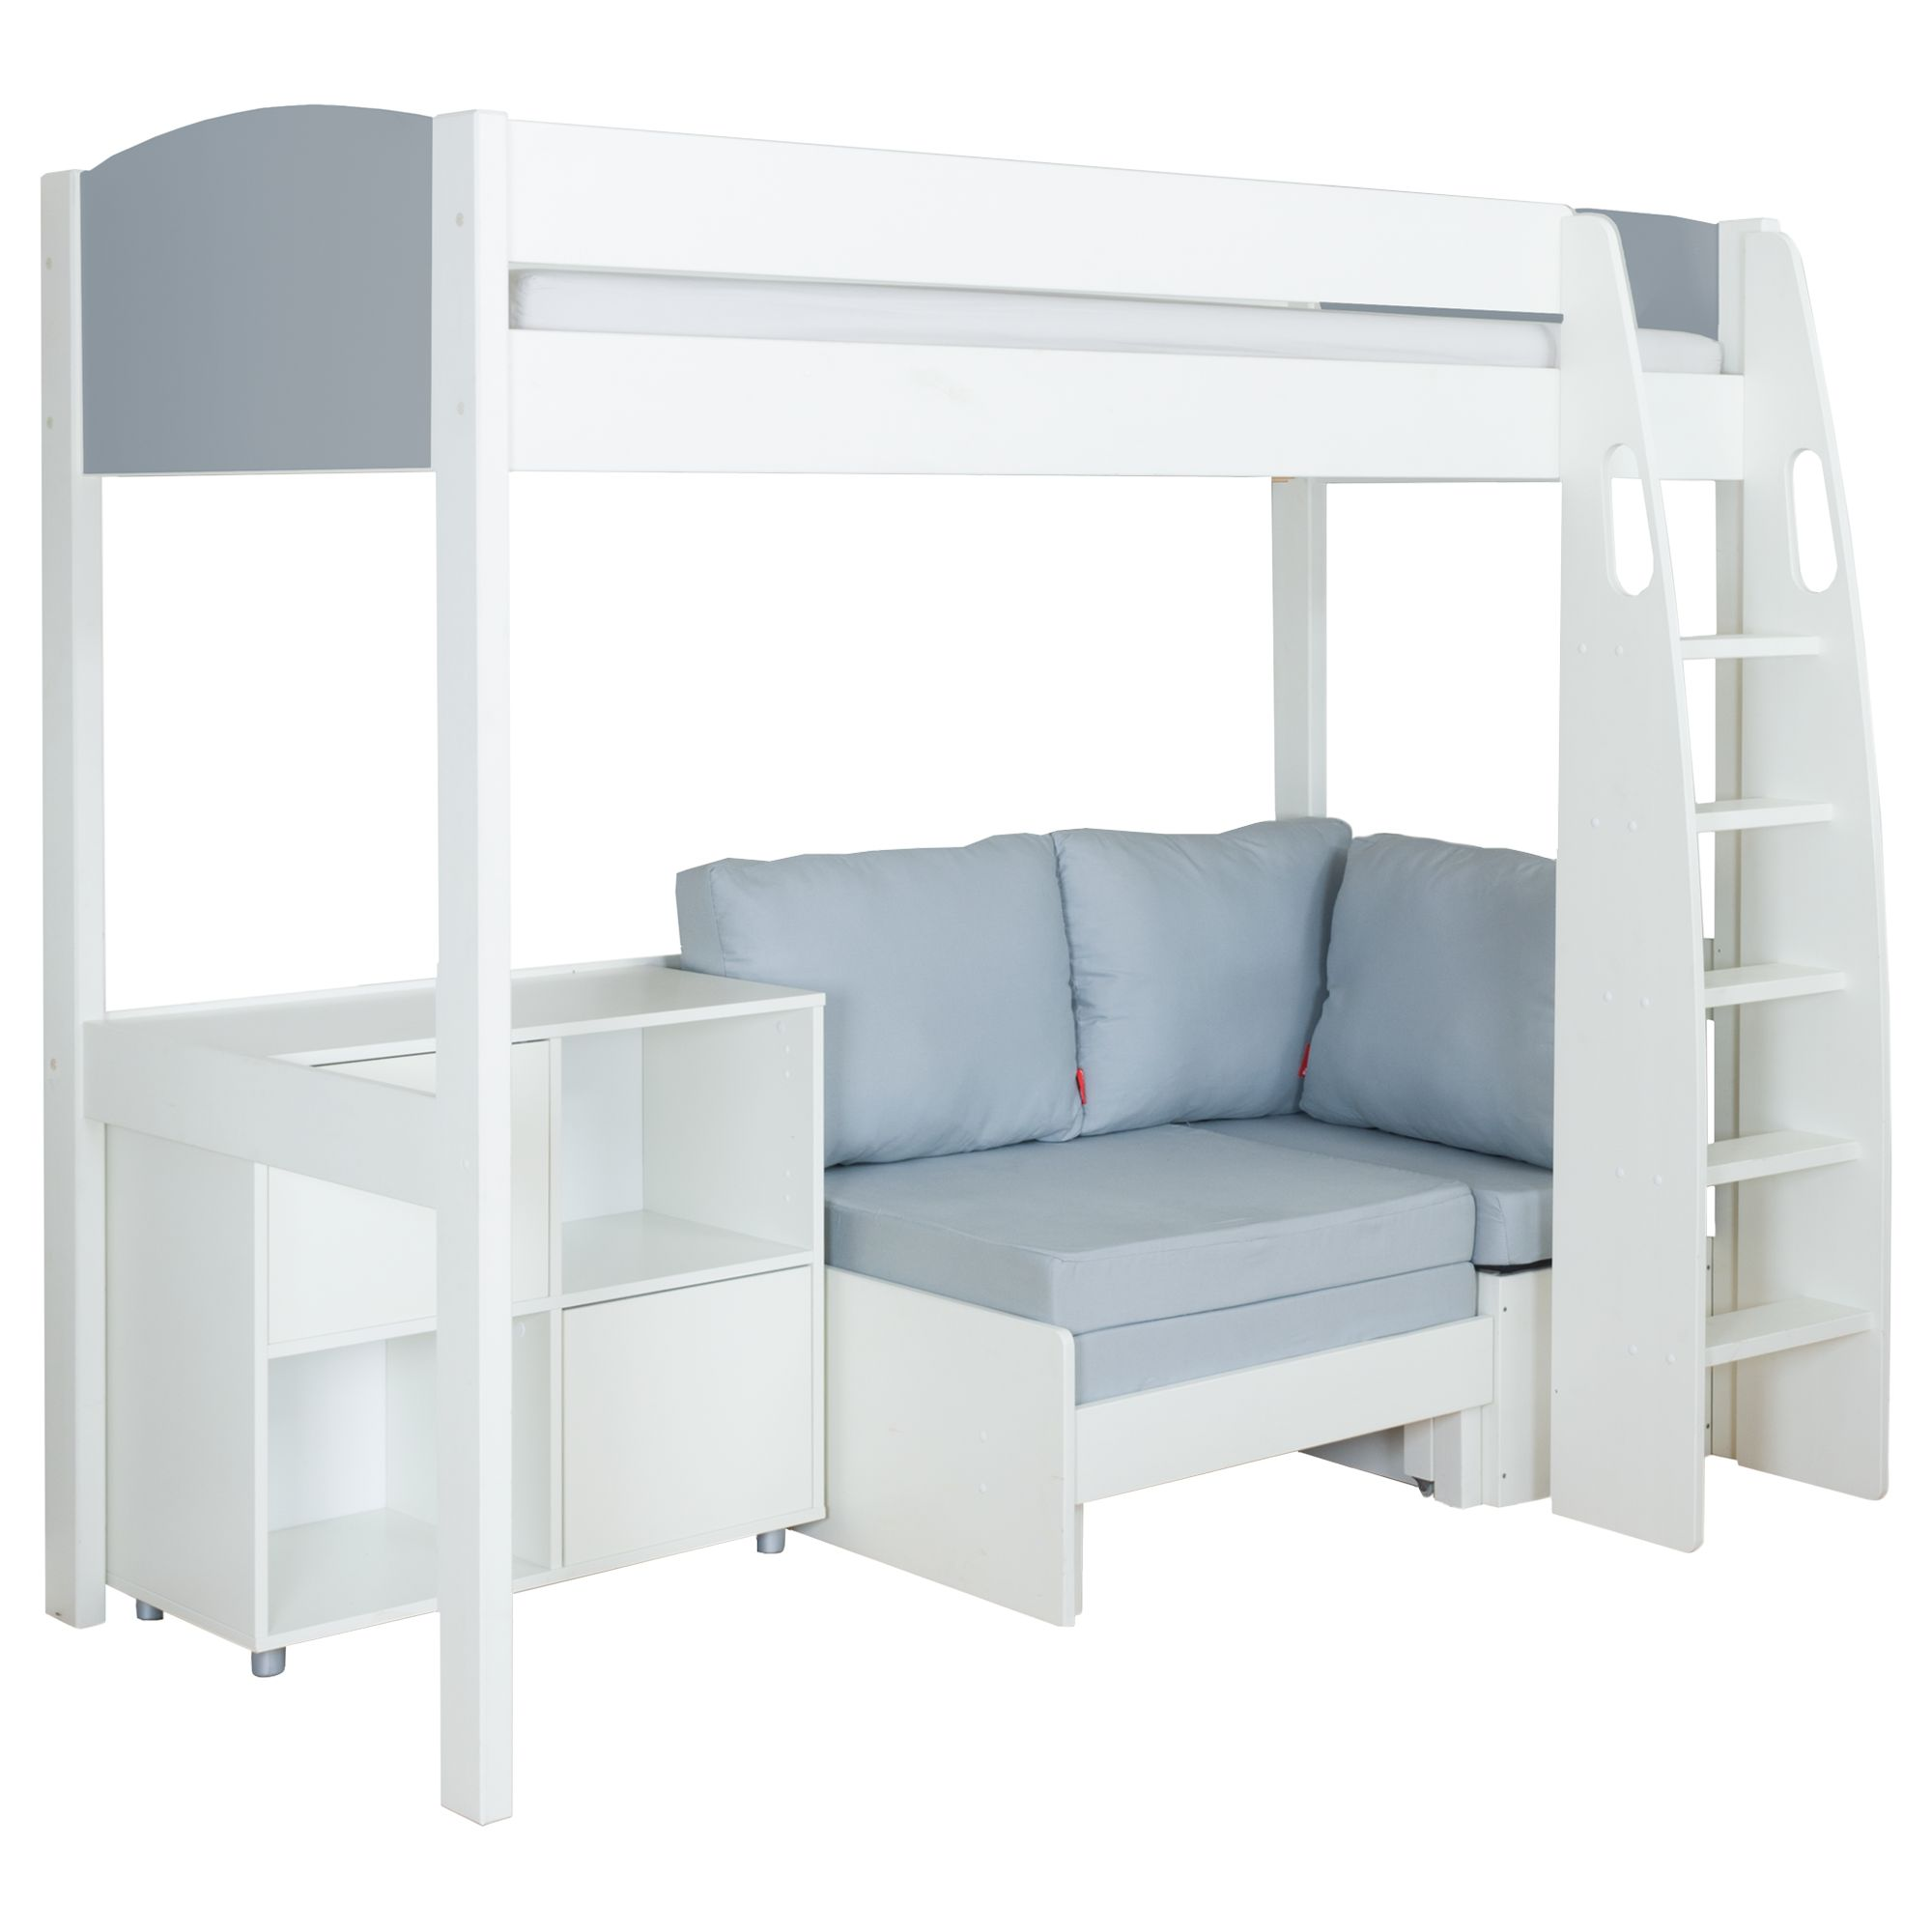 Stompa Stompa Uno S Plus High-Sleeper with Grey Headboard, Grey Chair Bed and 2 Door Cube Unit